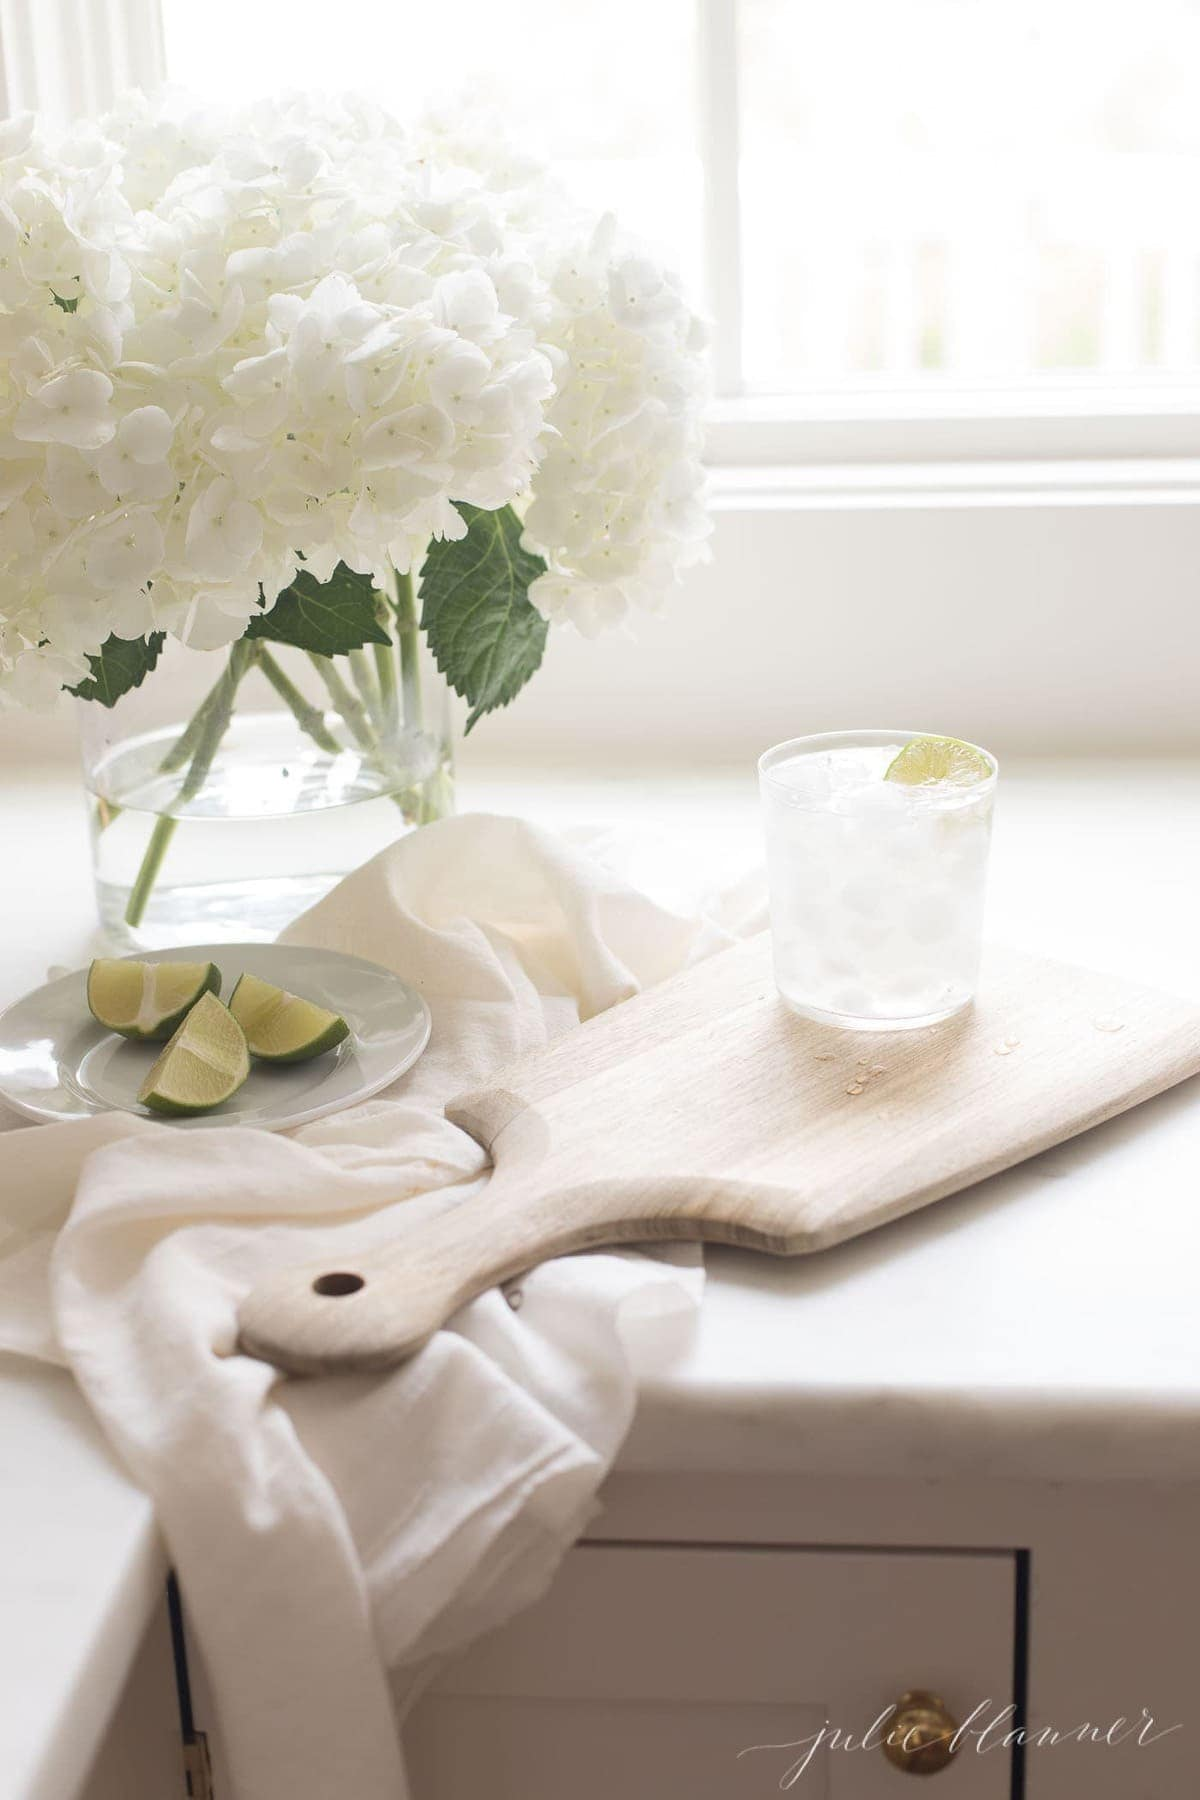 White surface with a glass filled with a paloma cocktail recipe on ice.